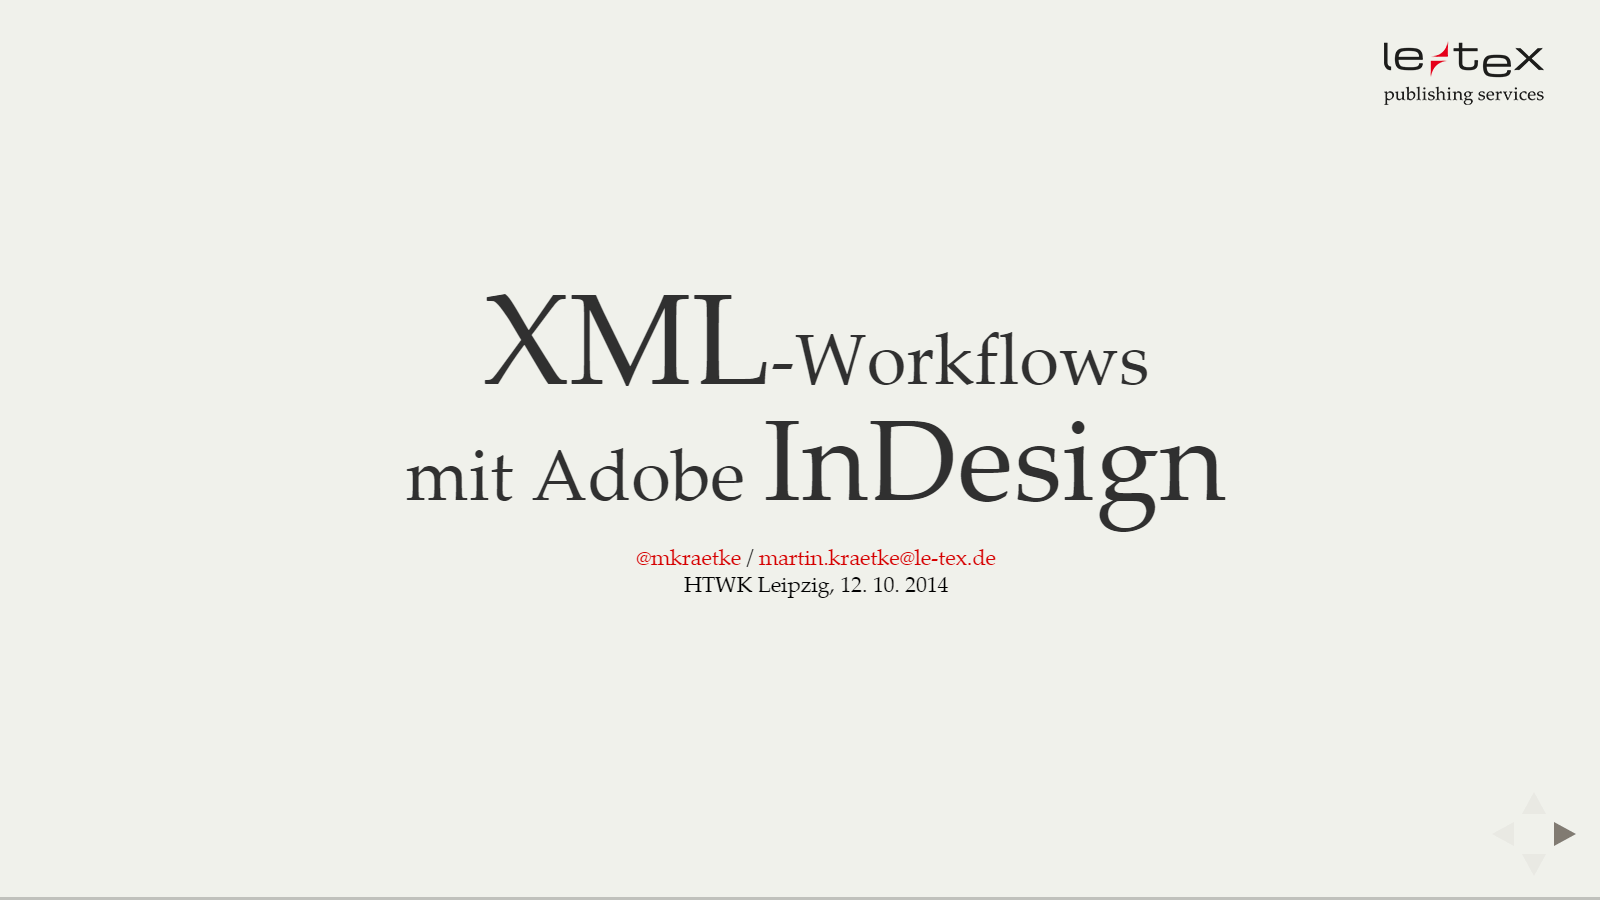 2014-12-10 InDesign-XML-Workflows